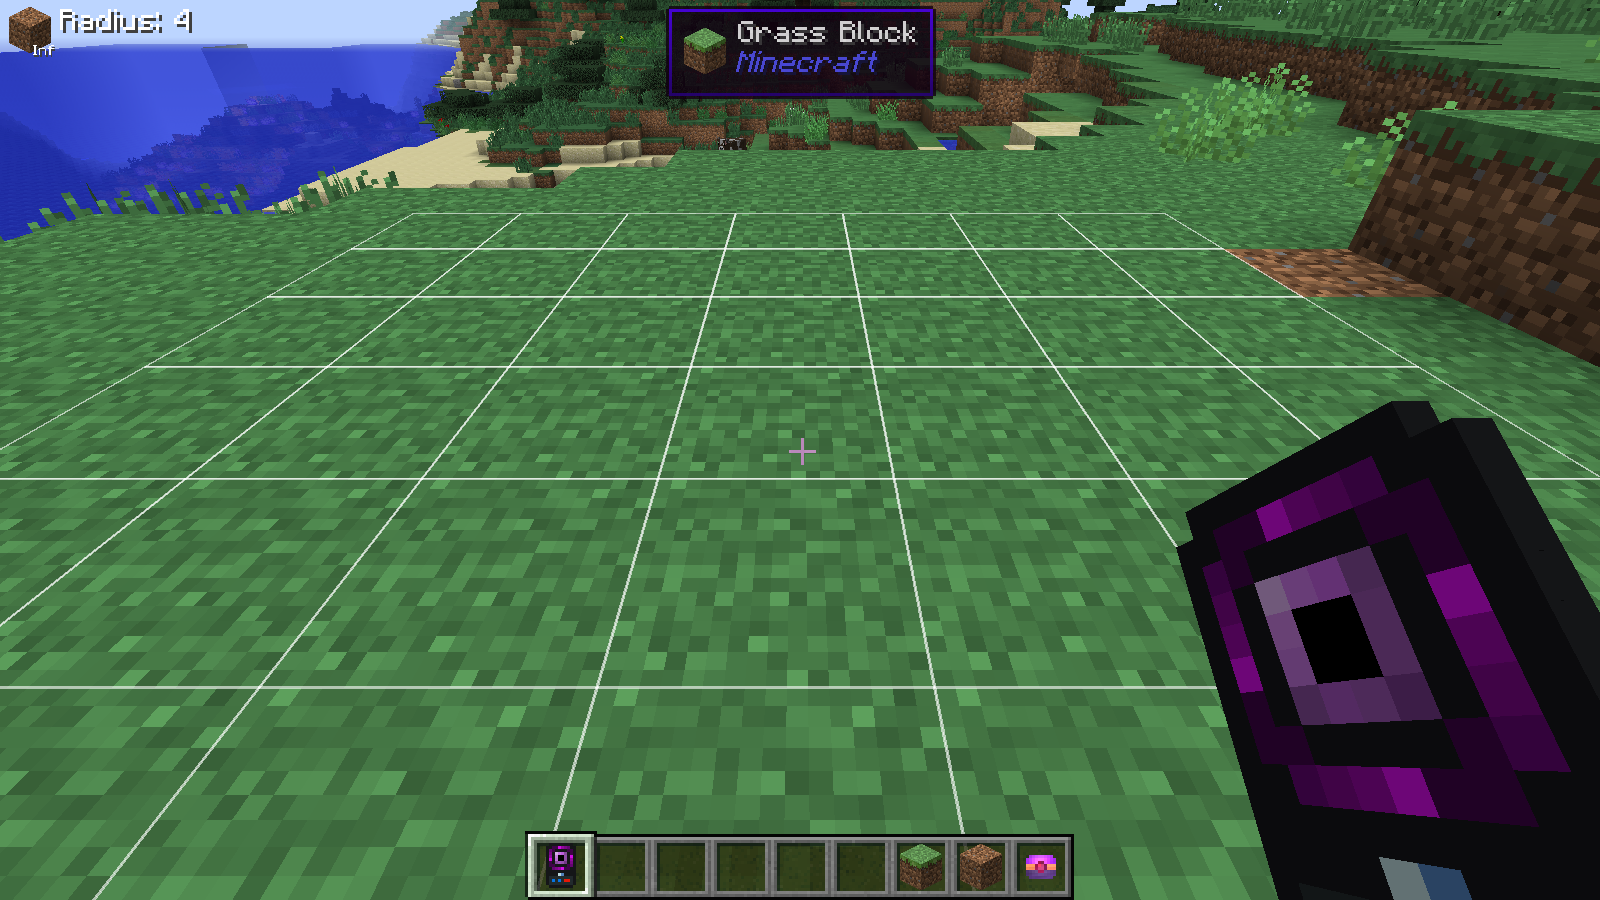 8bdbfcb0b2cd4e5b9bf63527ca5d9e3a EnderTech Screenshots